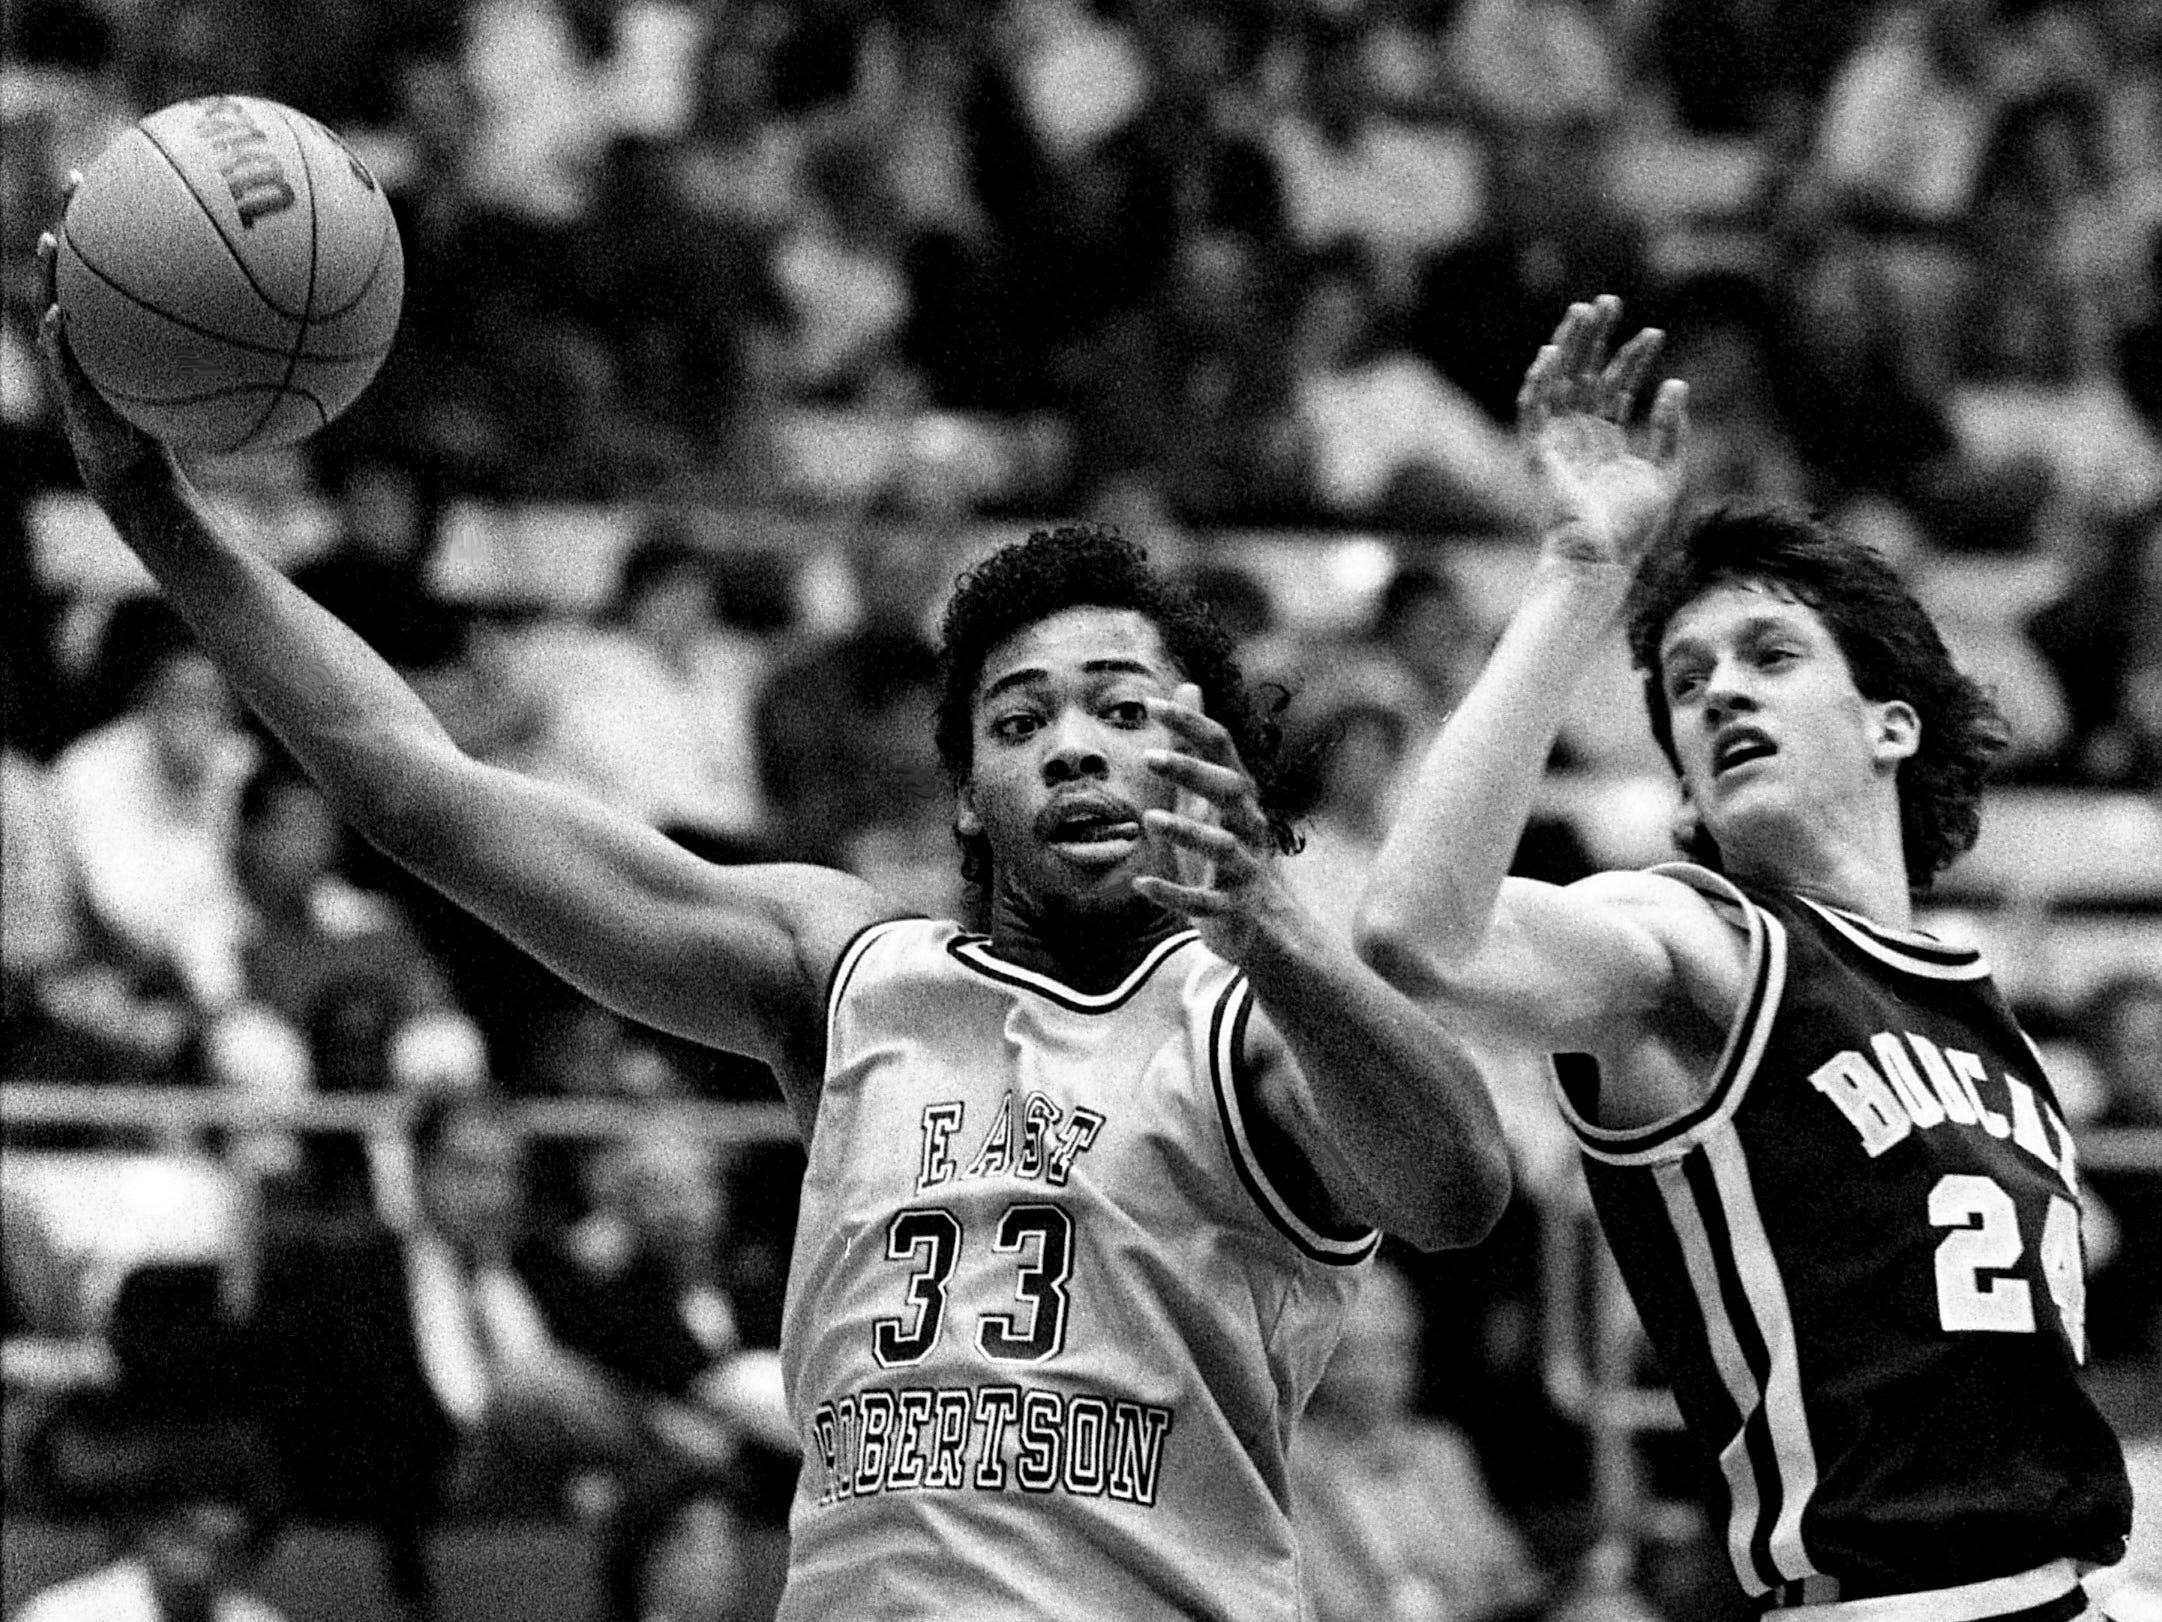 East Robertson High senior center Carlus Groves (33) makes his move inside past Oliver Springs High's Paul McDonald (24) for two of his game-high 36 points in their 83-62 win during the TSSAA Class A championship game at MTSU's Murphy Center in Murfreesboro  on March 18, 1989. Groves, Class A Mr. Basketball, hit 18 of 21 shots to go along with 17 rebounds.